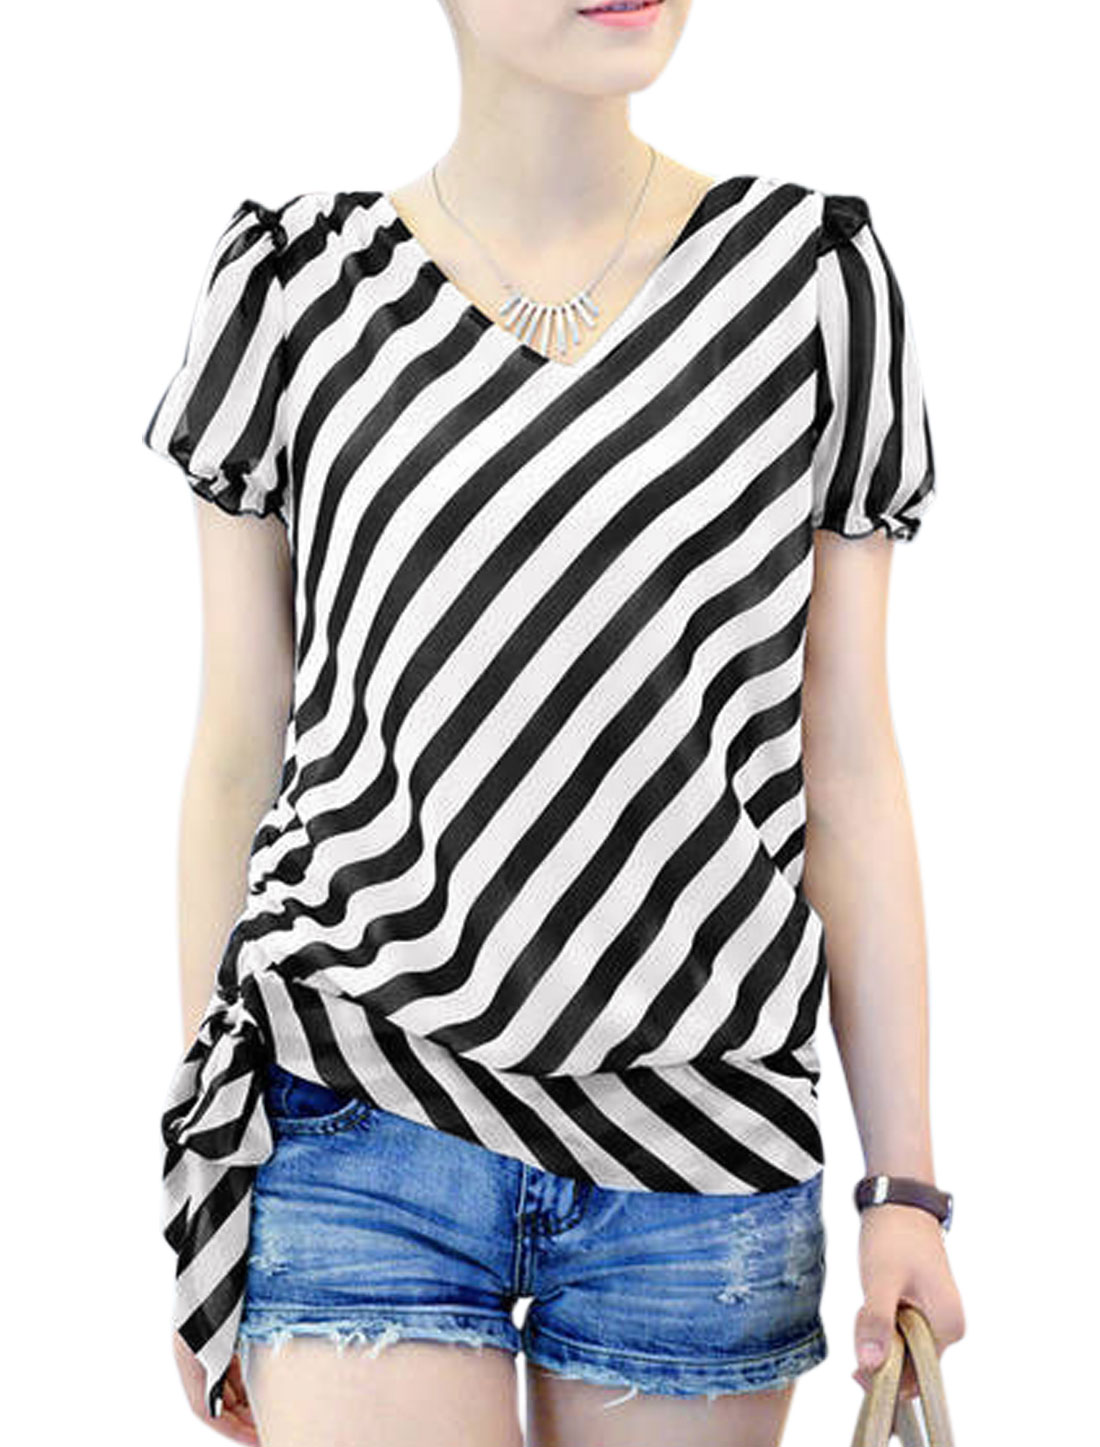 Women Cozy Fit Bow-tie Hem Oblique Stripes Chffion Top Black White M